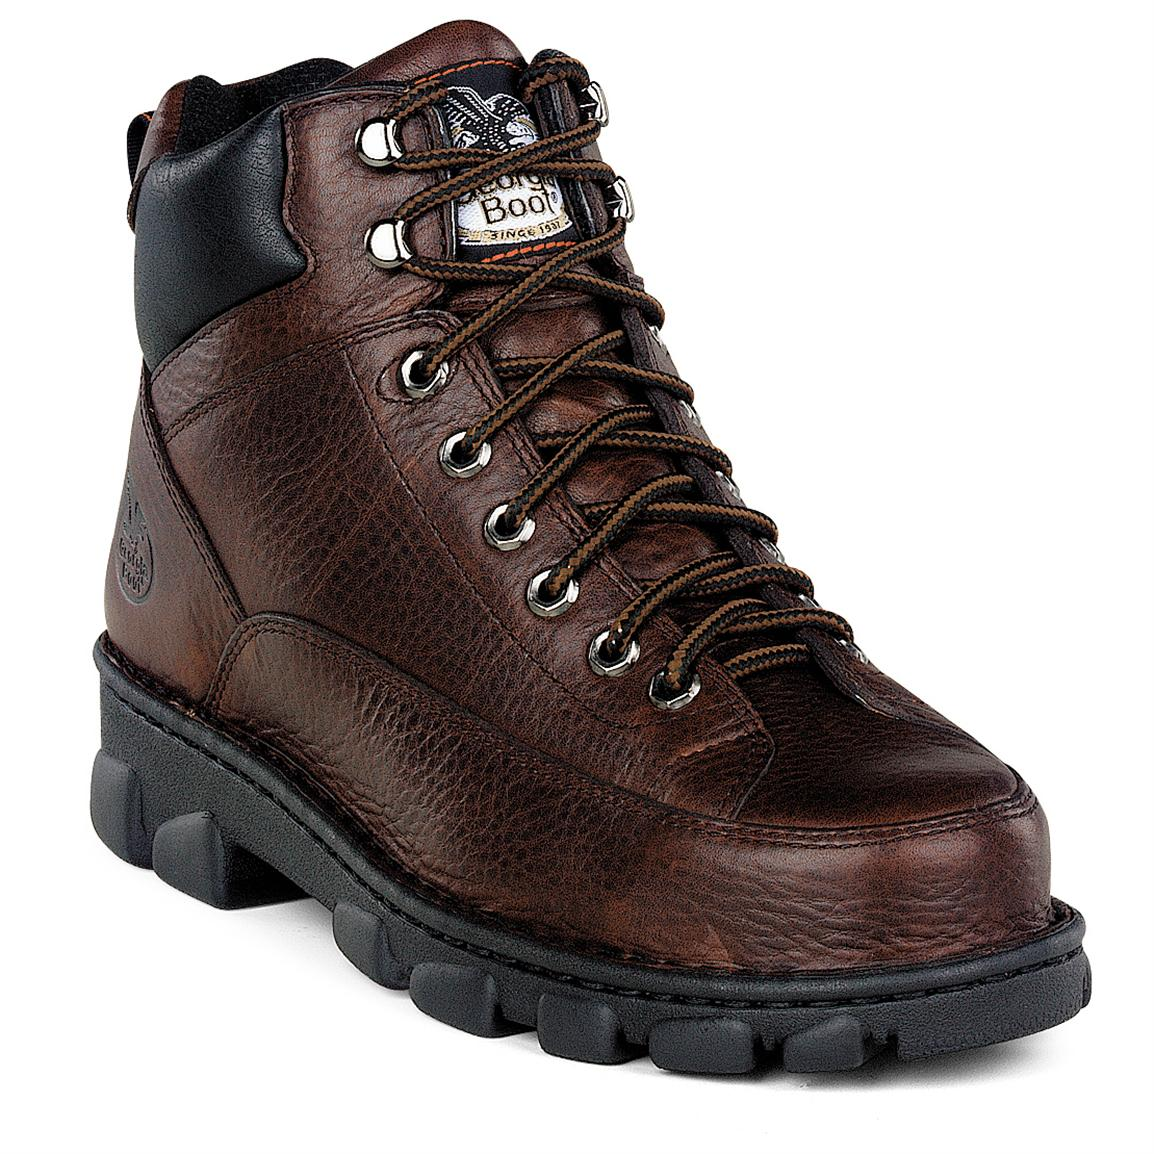 Men's Georgia® Eagle Light Wide Load Steel Toe Boots, Dark Brown